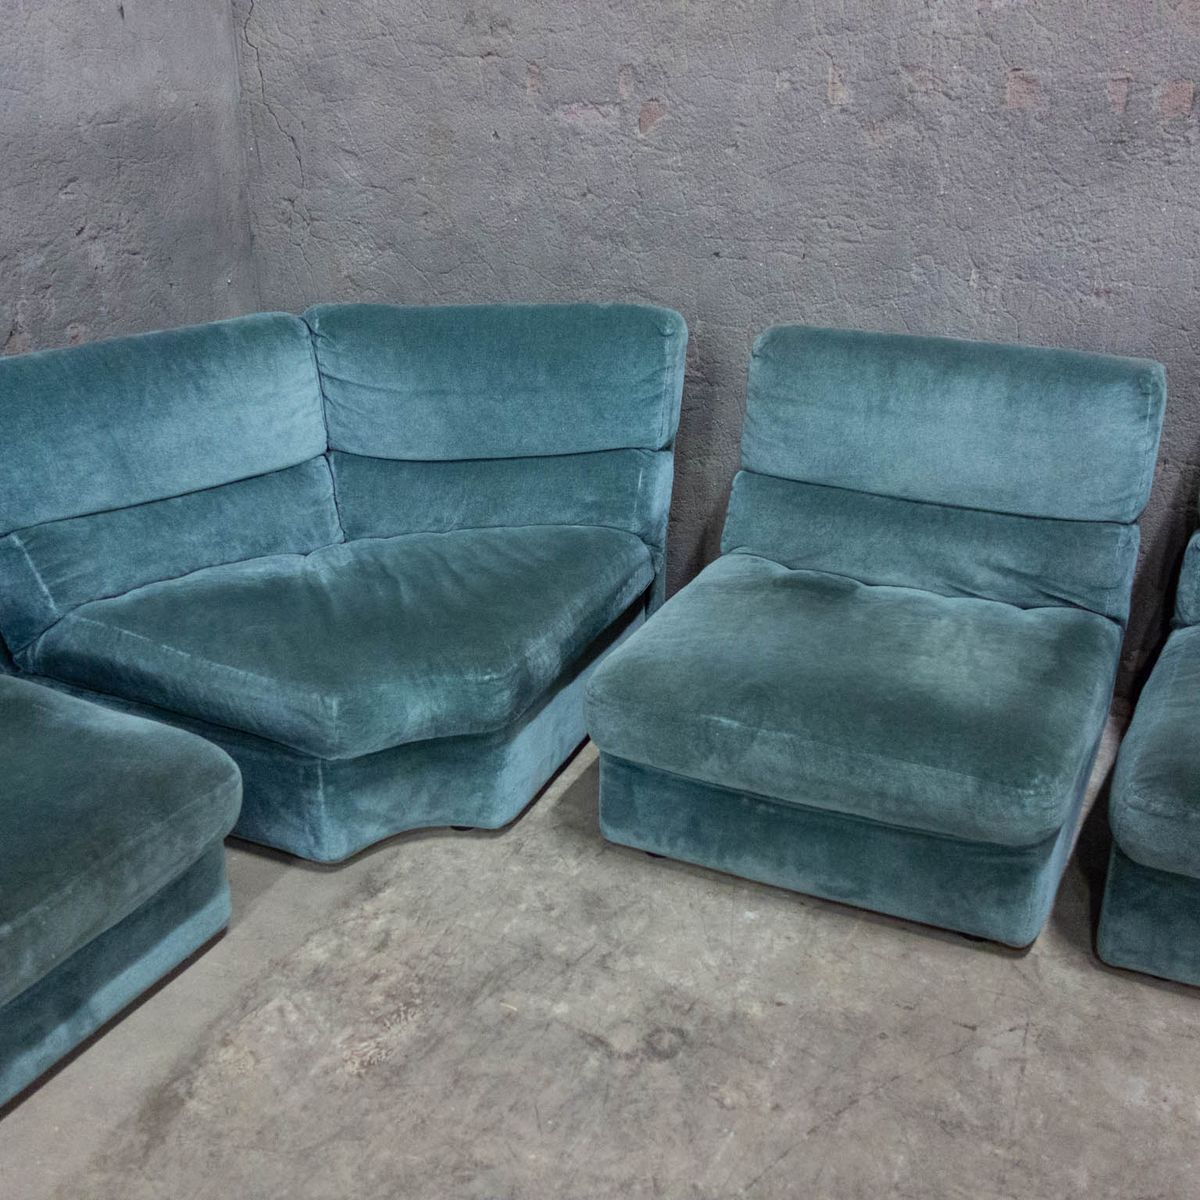 Modular 4 Piece Sofa From Rolf Benz, 1970s For Sale At Pamono